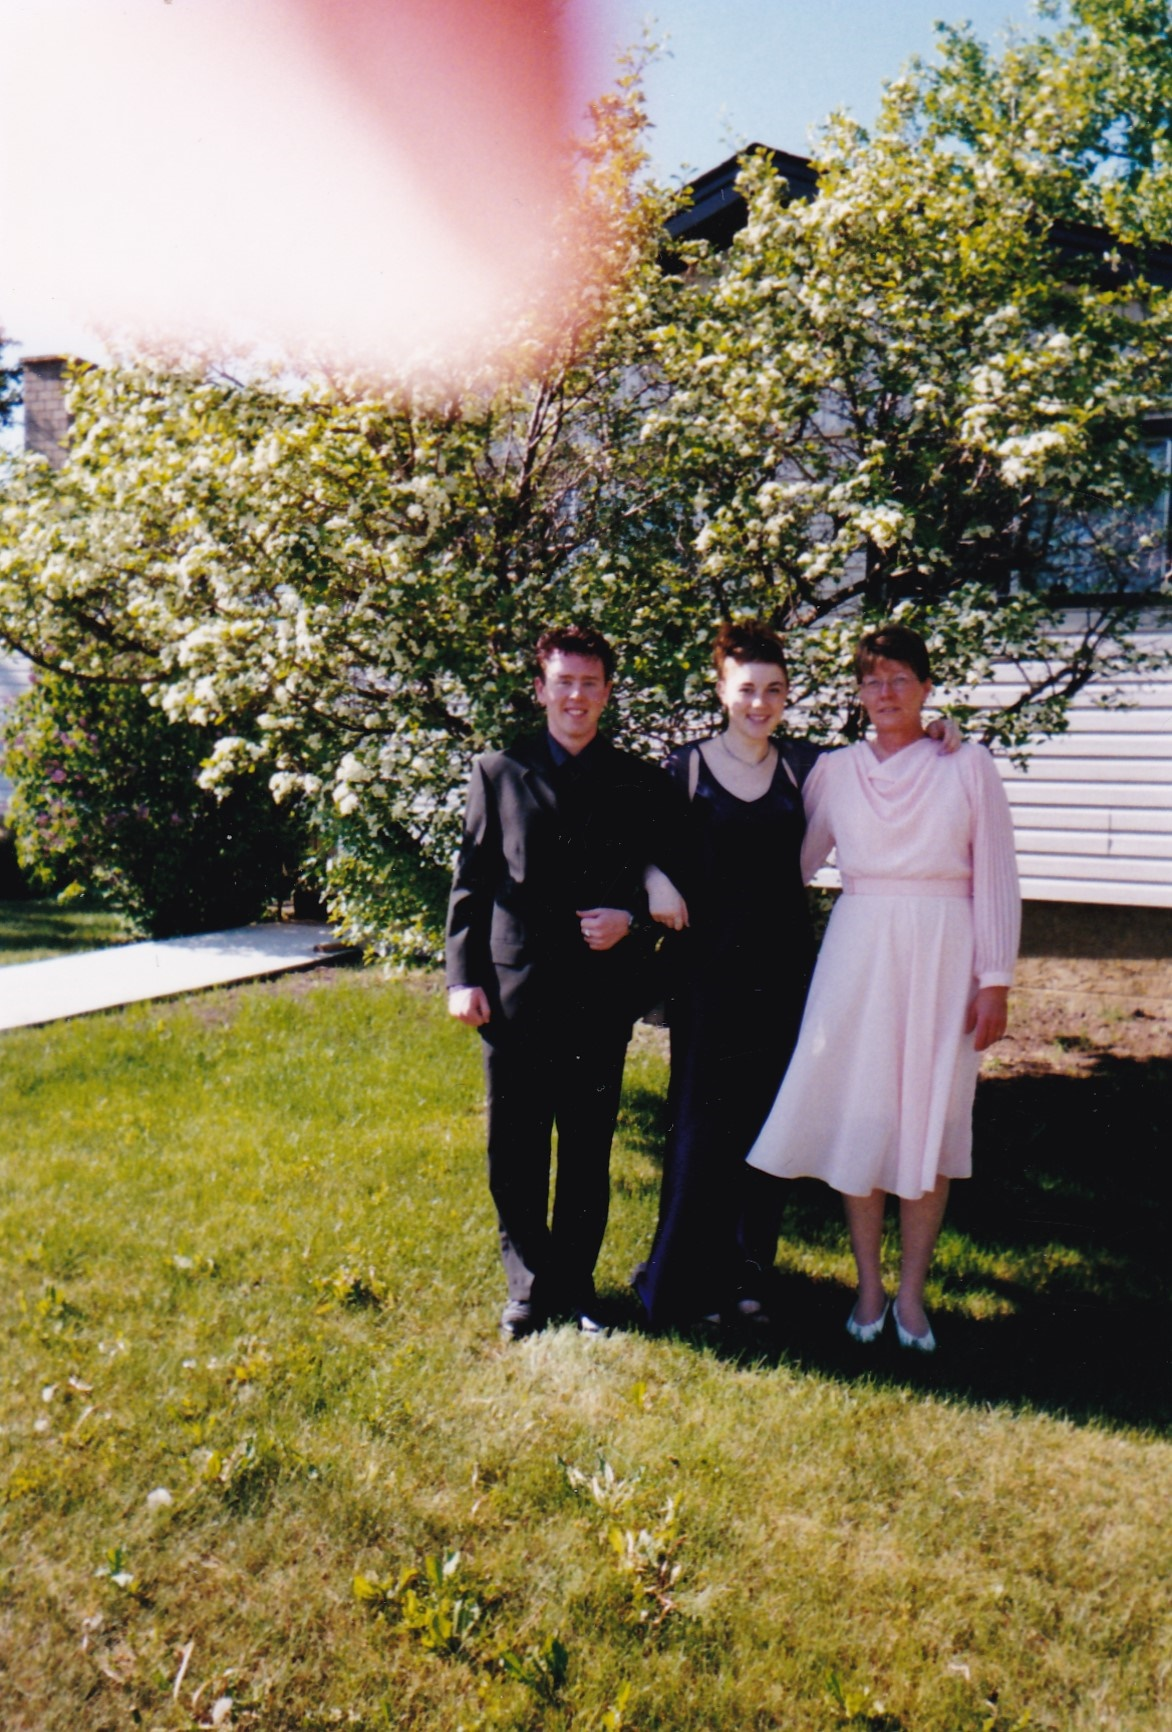 Graduation photographer a photo of me, my date, and my mom standing in front of a white lilac tree. There is a fingertip in the upper corner of the photo. My dress which is purple actually looks black